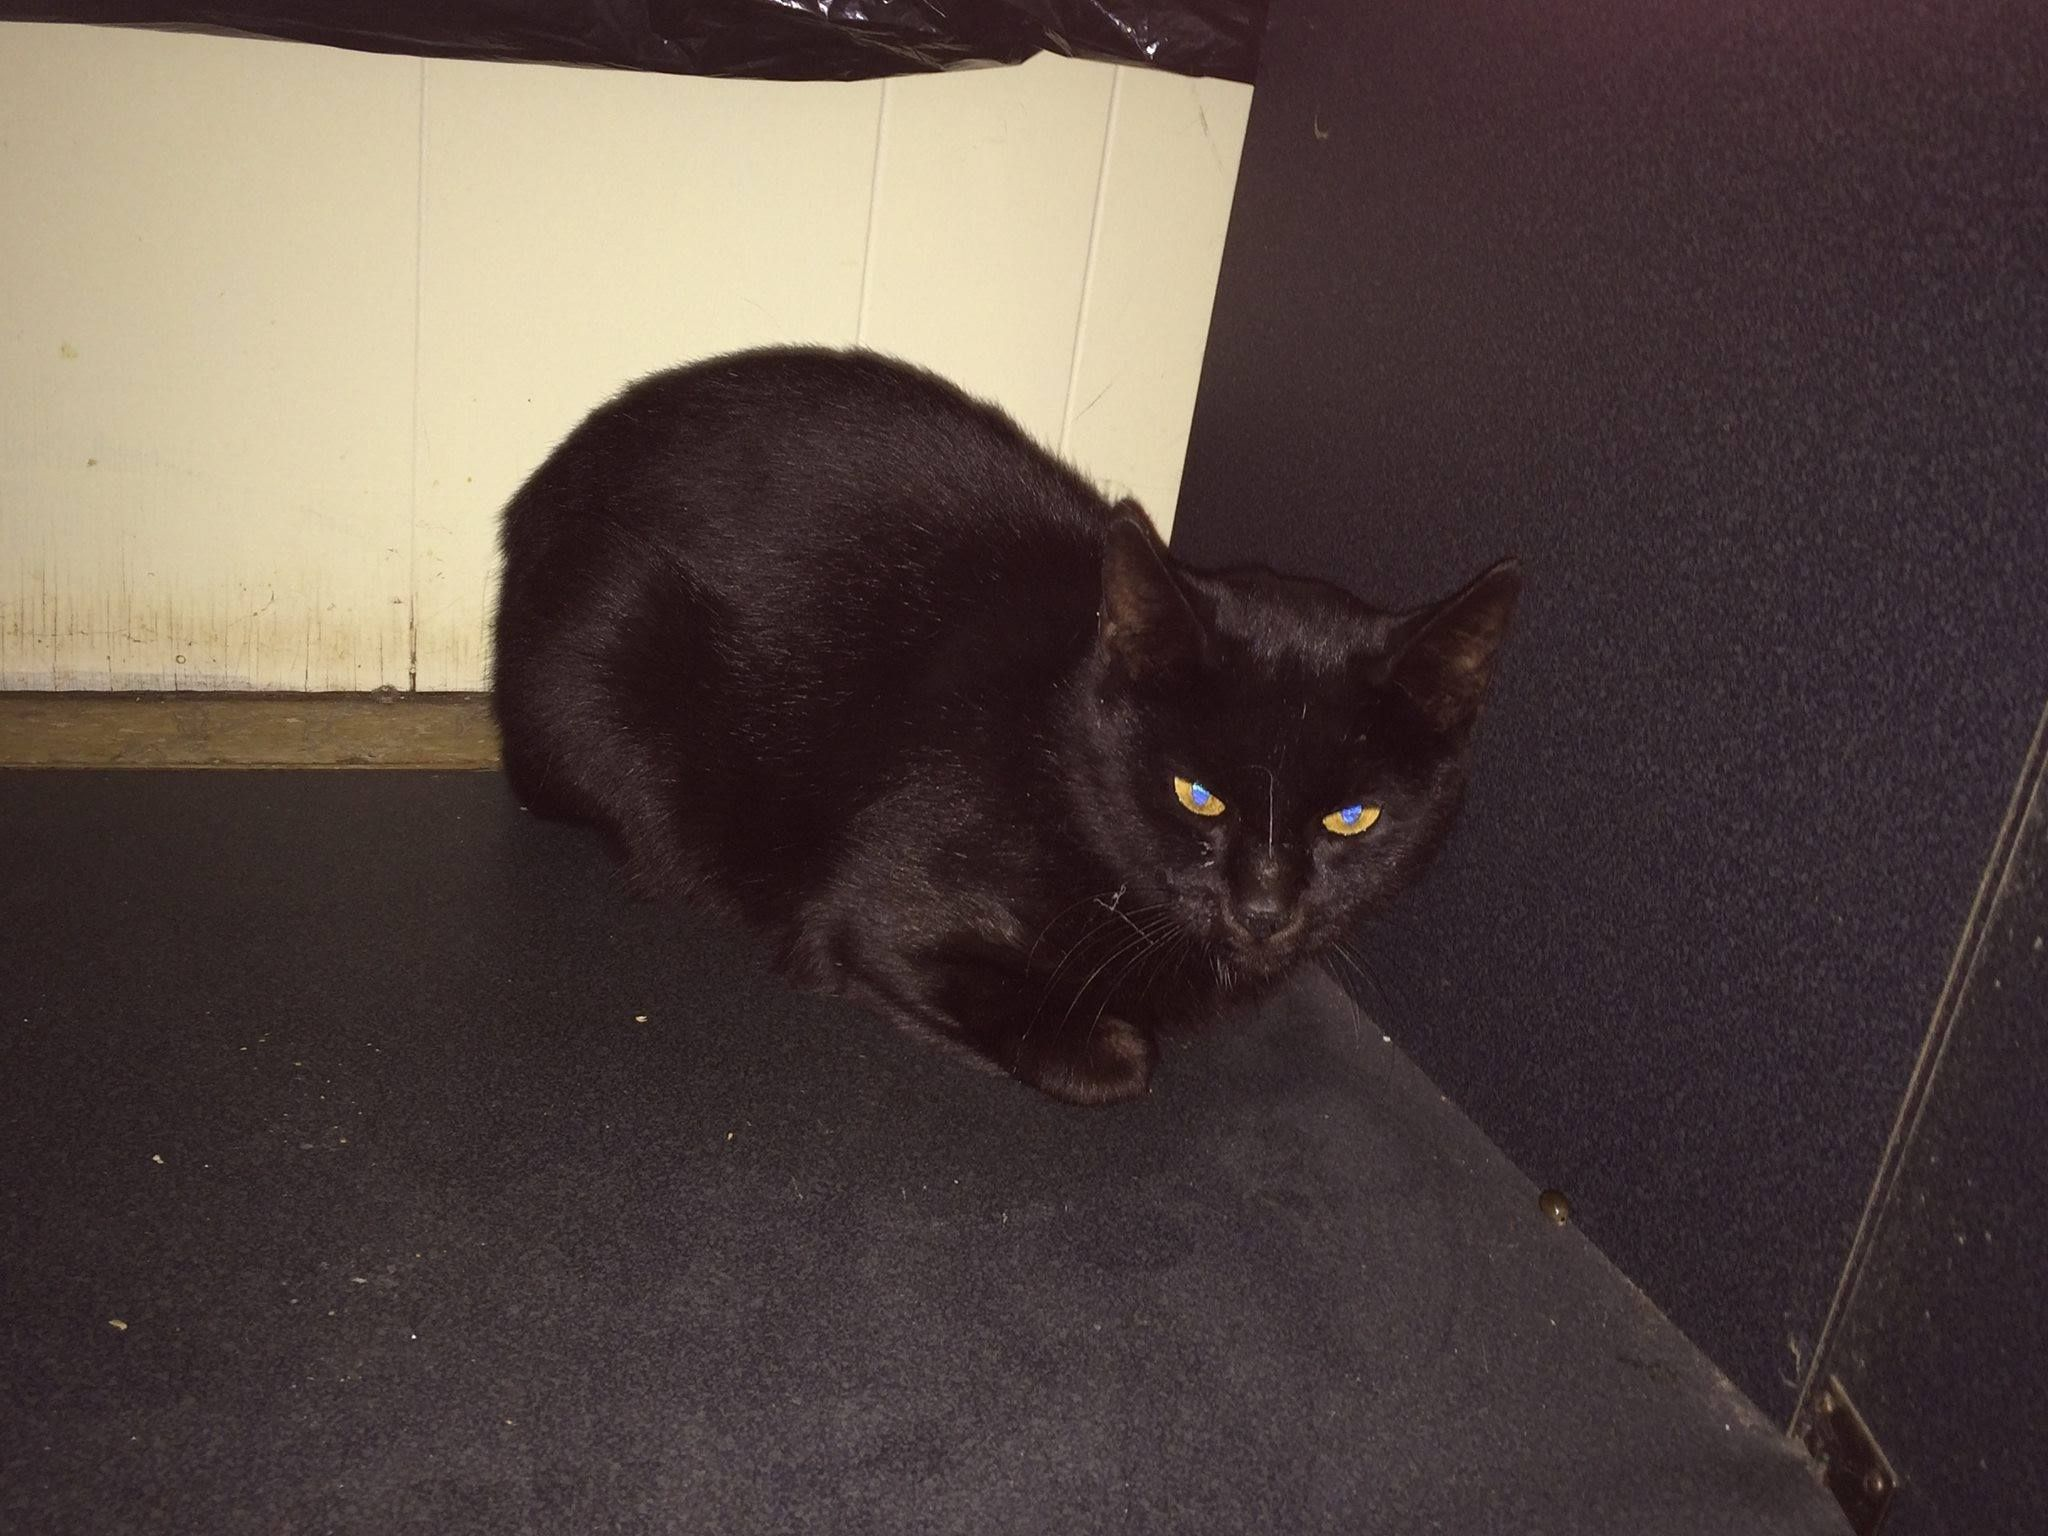 Https Www Facebook Com Ct Lost Pets Posts 777012162420661 Patricia Bruhn Ct Lost Pets October 27 Last Week Found Losing A Pet All Black Cat Found Cat